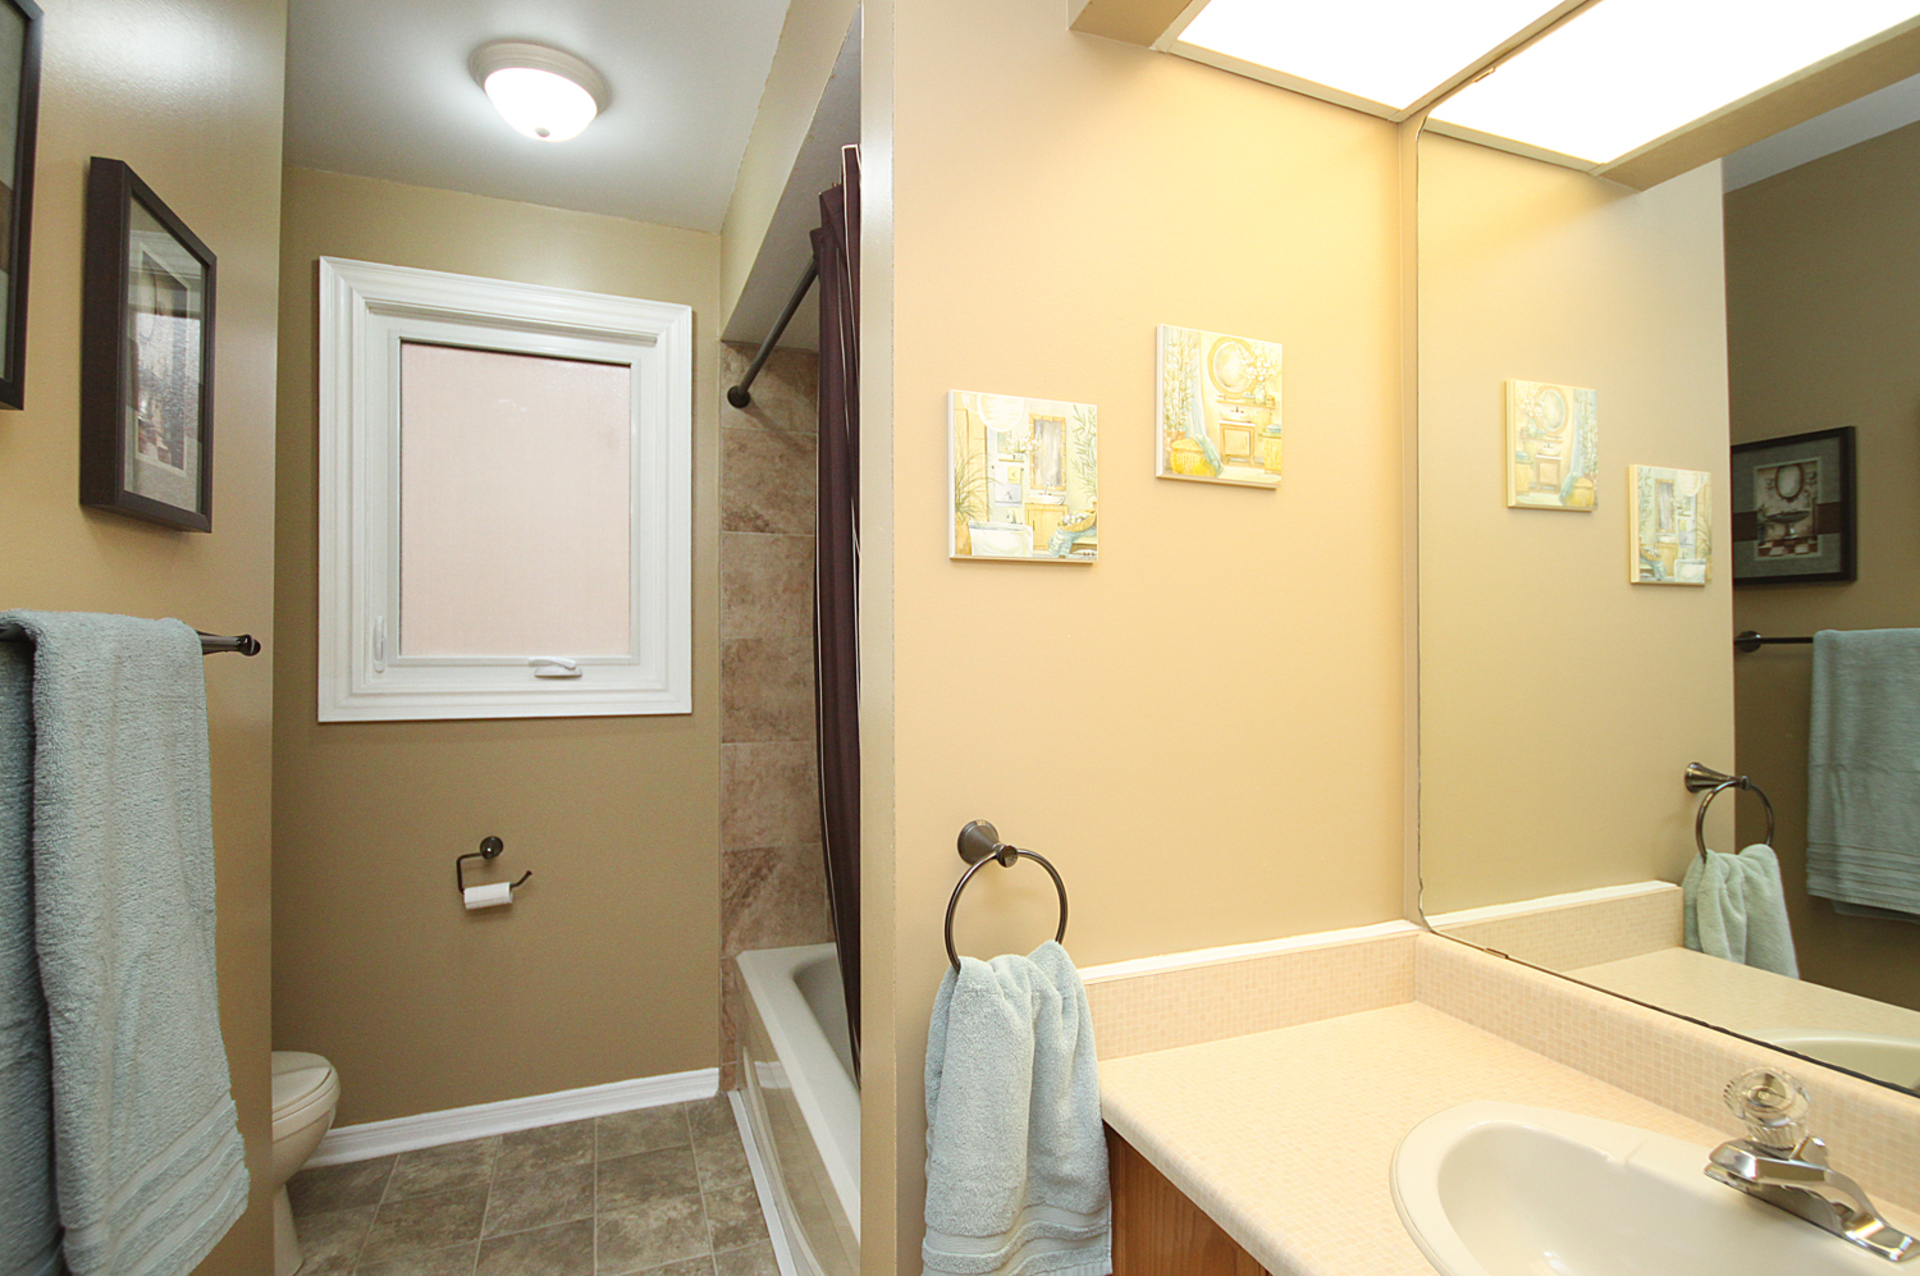 4 Piece Bathroom at 1182 Maple Gate Road, Liverpool, Pickering